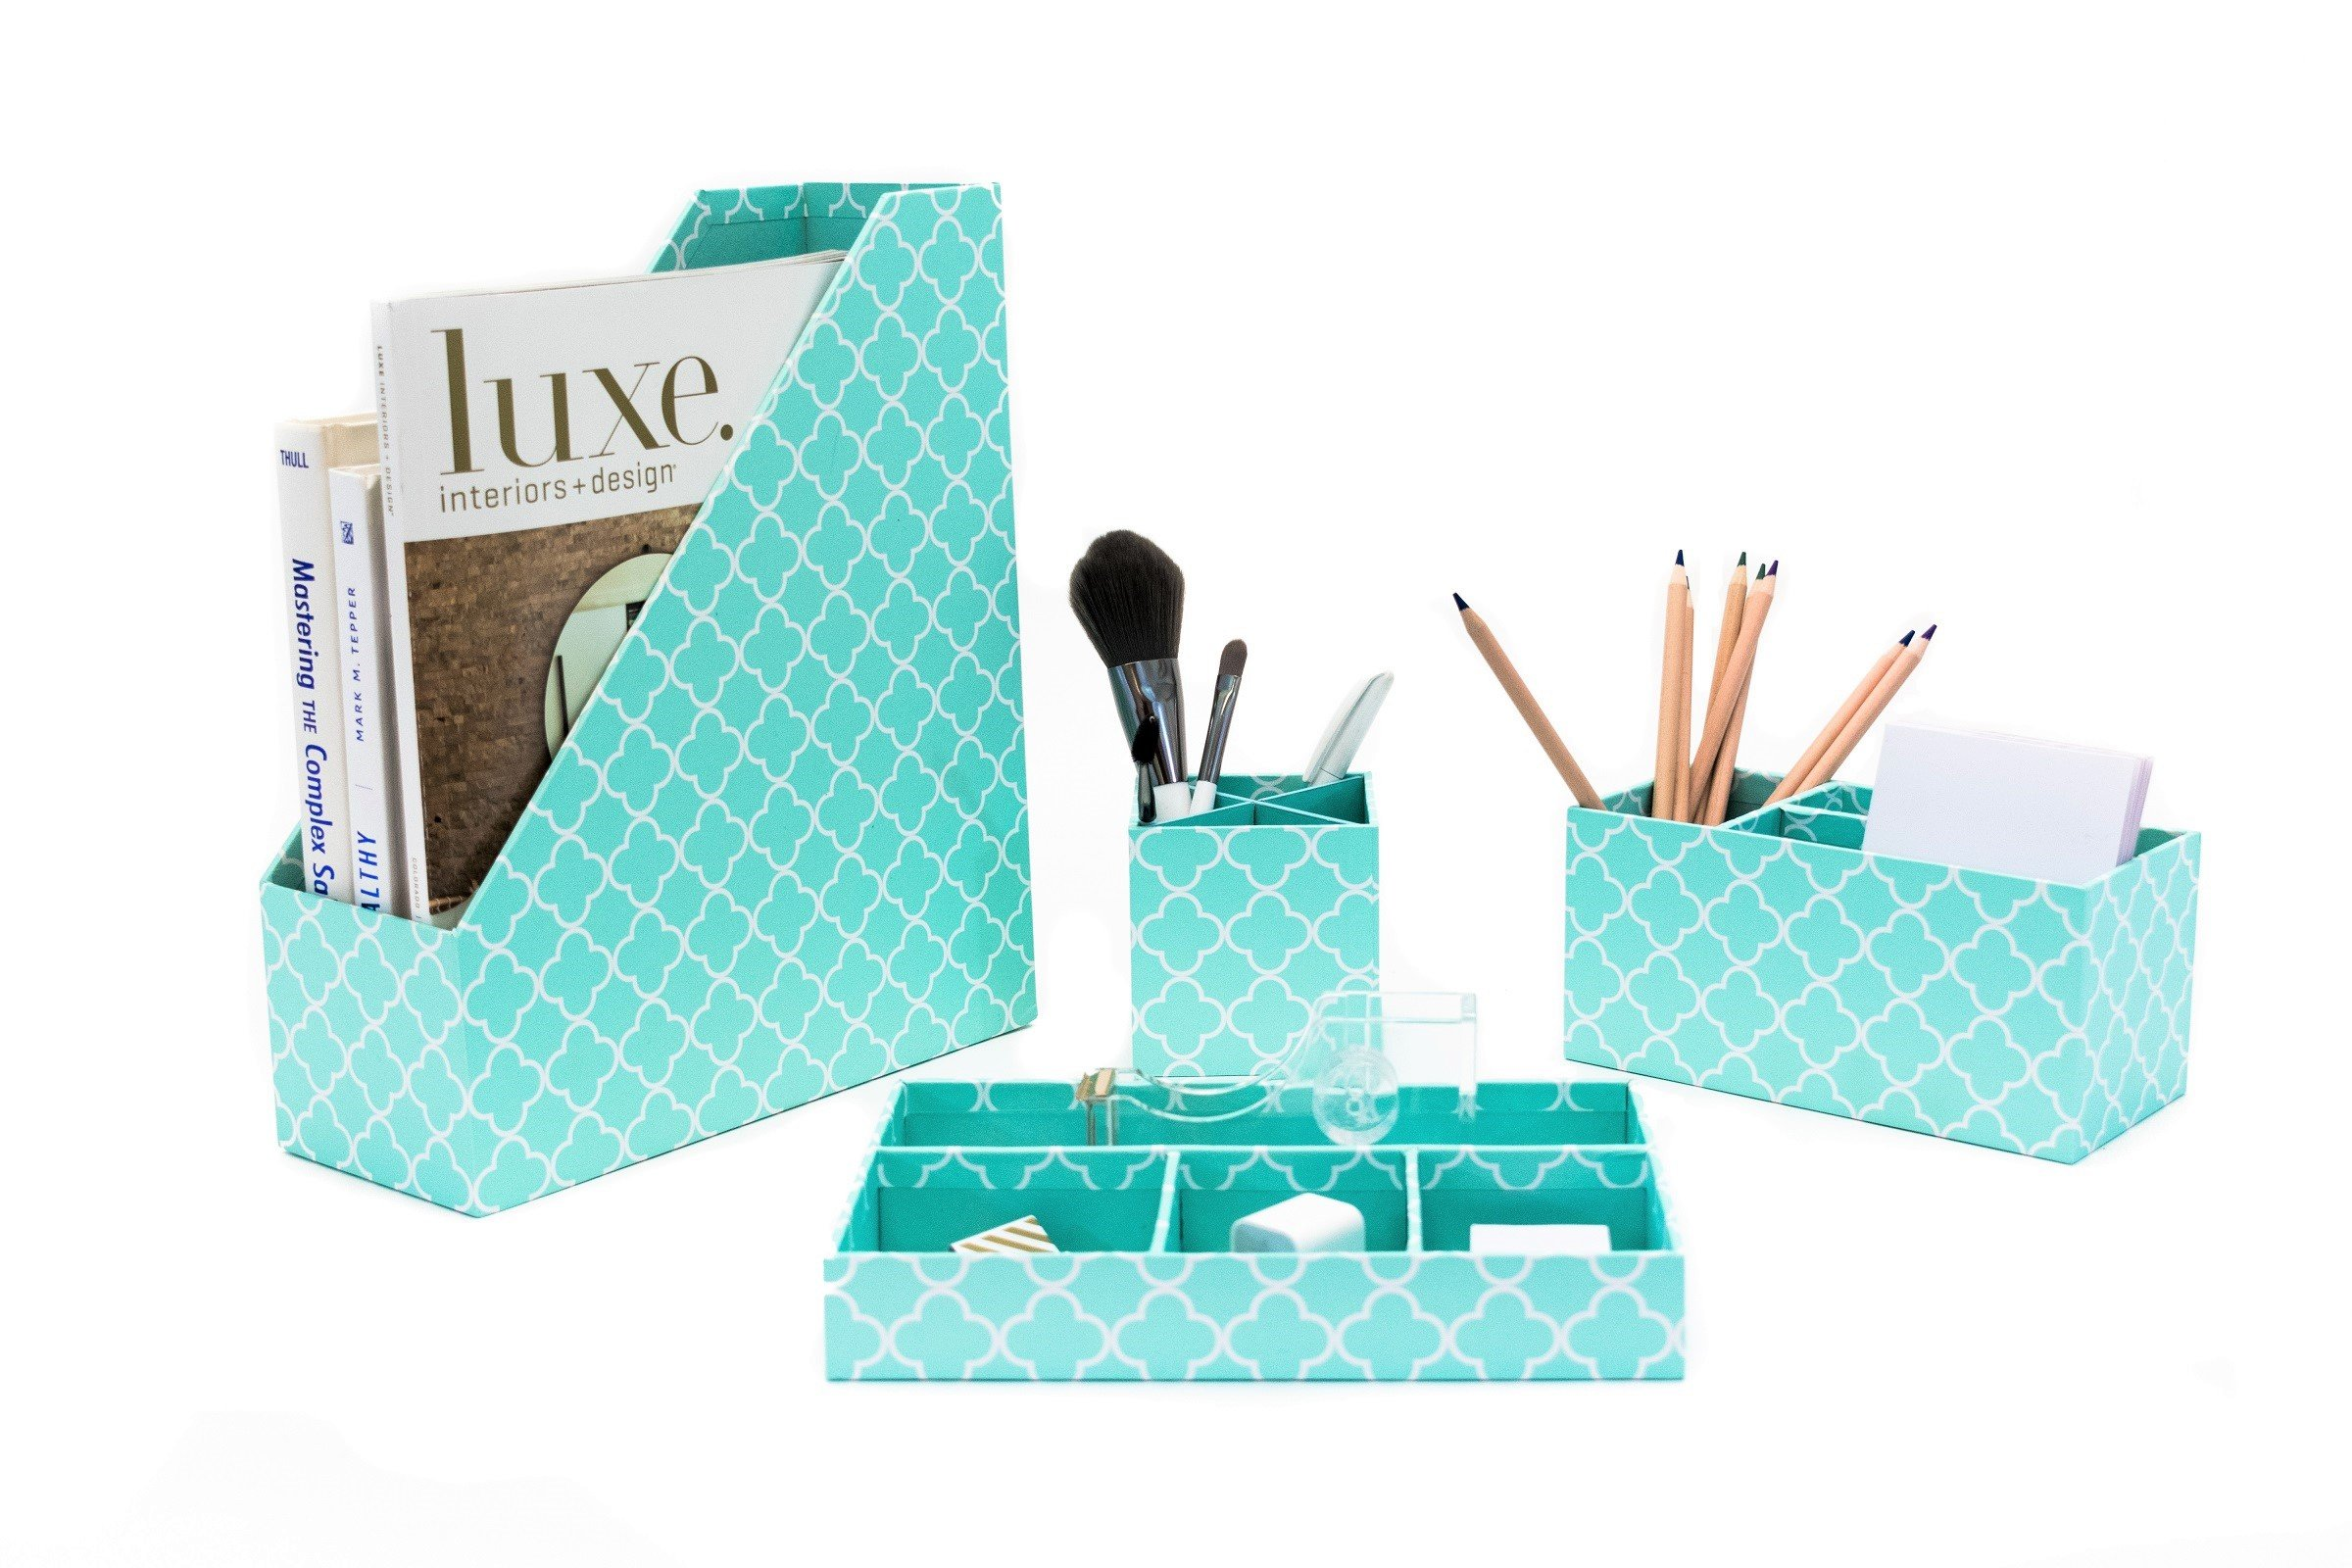 Blu Monaco Turquoise Desk Organizer for Women - 4 Piece Desk Accessories Set - Letter - Mail Organizer, Sticky Note Holder, Pen Cup, Magazine File Holder - Teal Aqua Clover